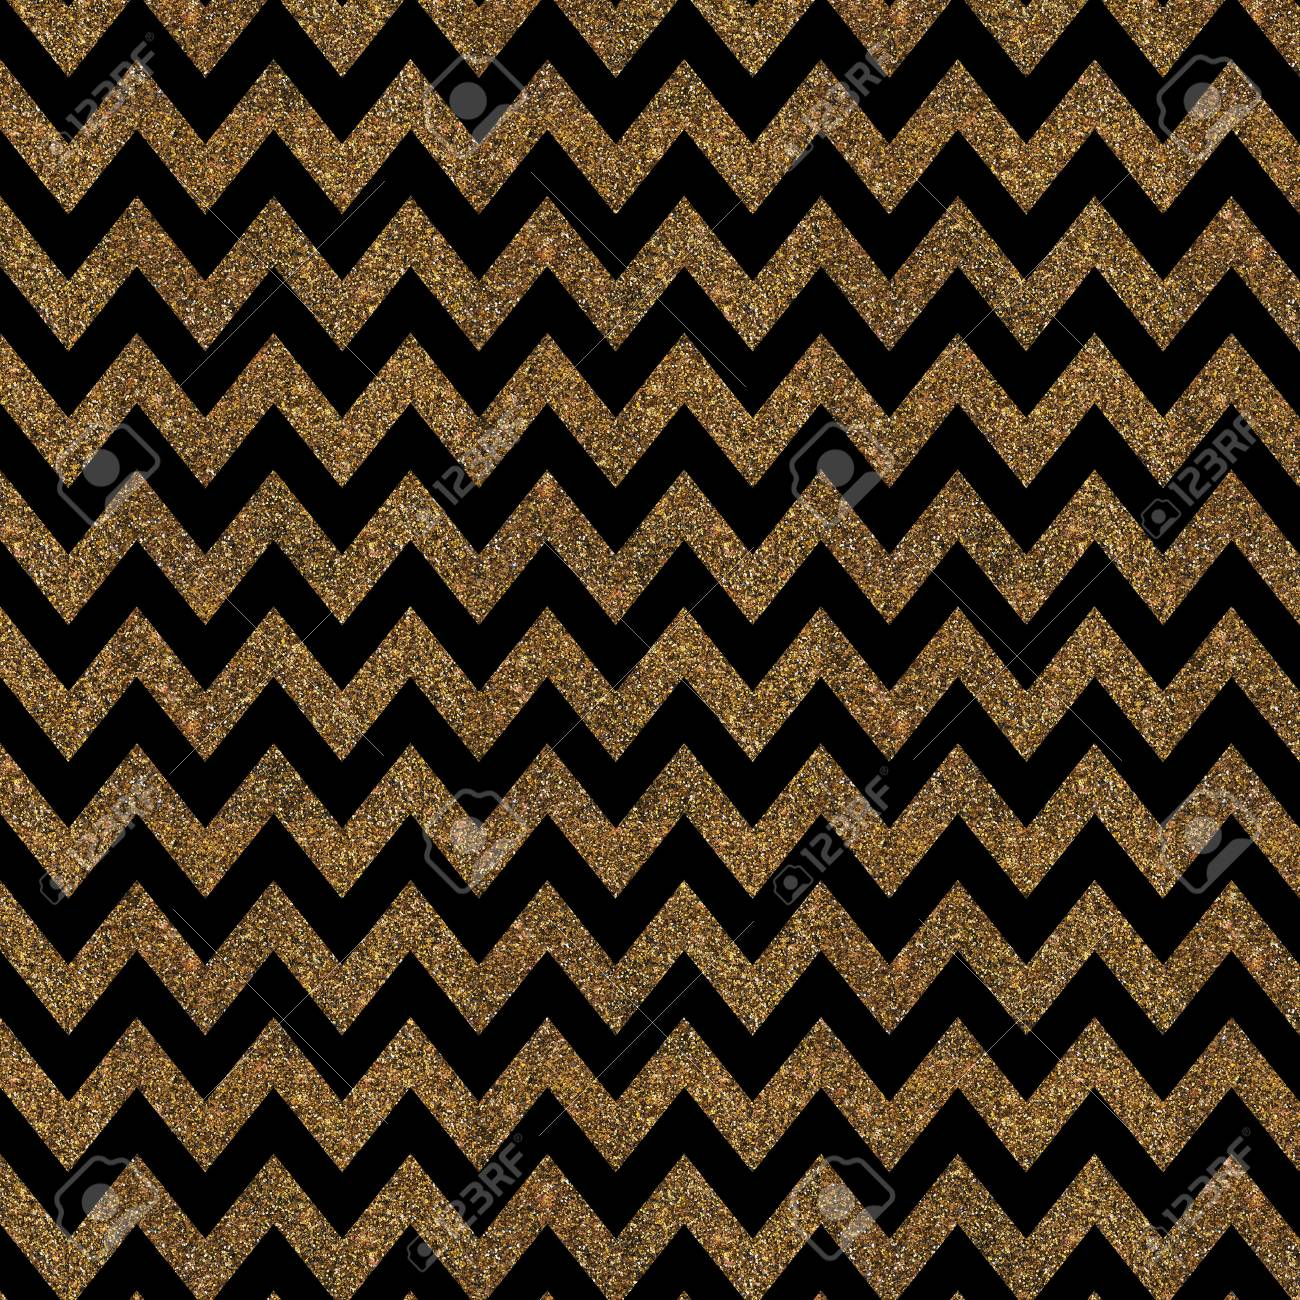 pattern with gold glitter textured chevron print on black background